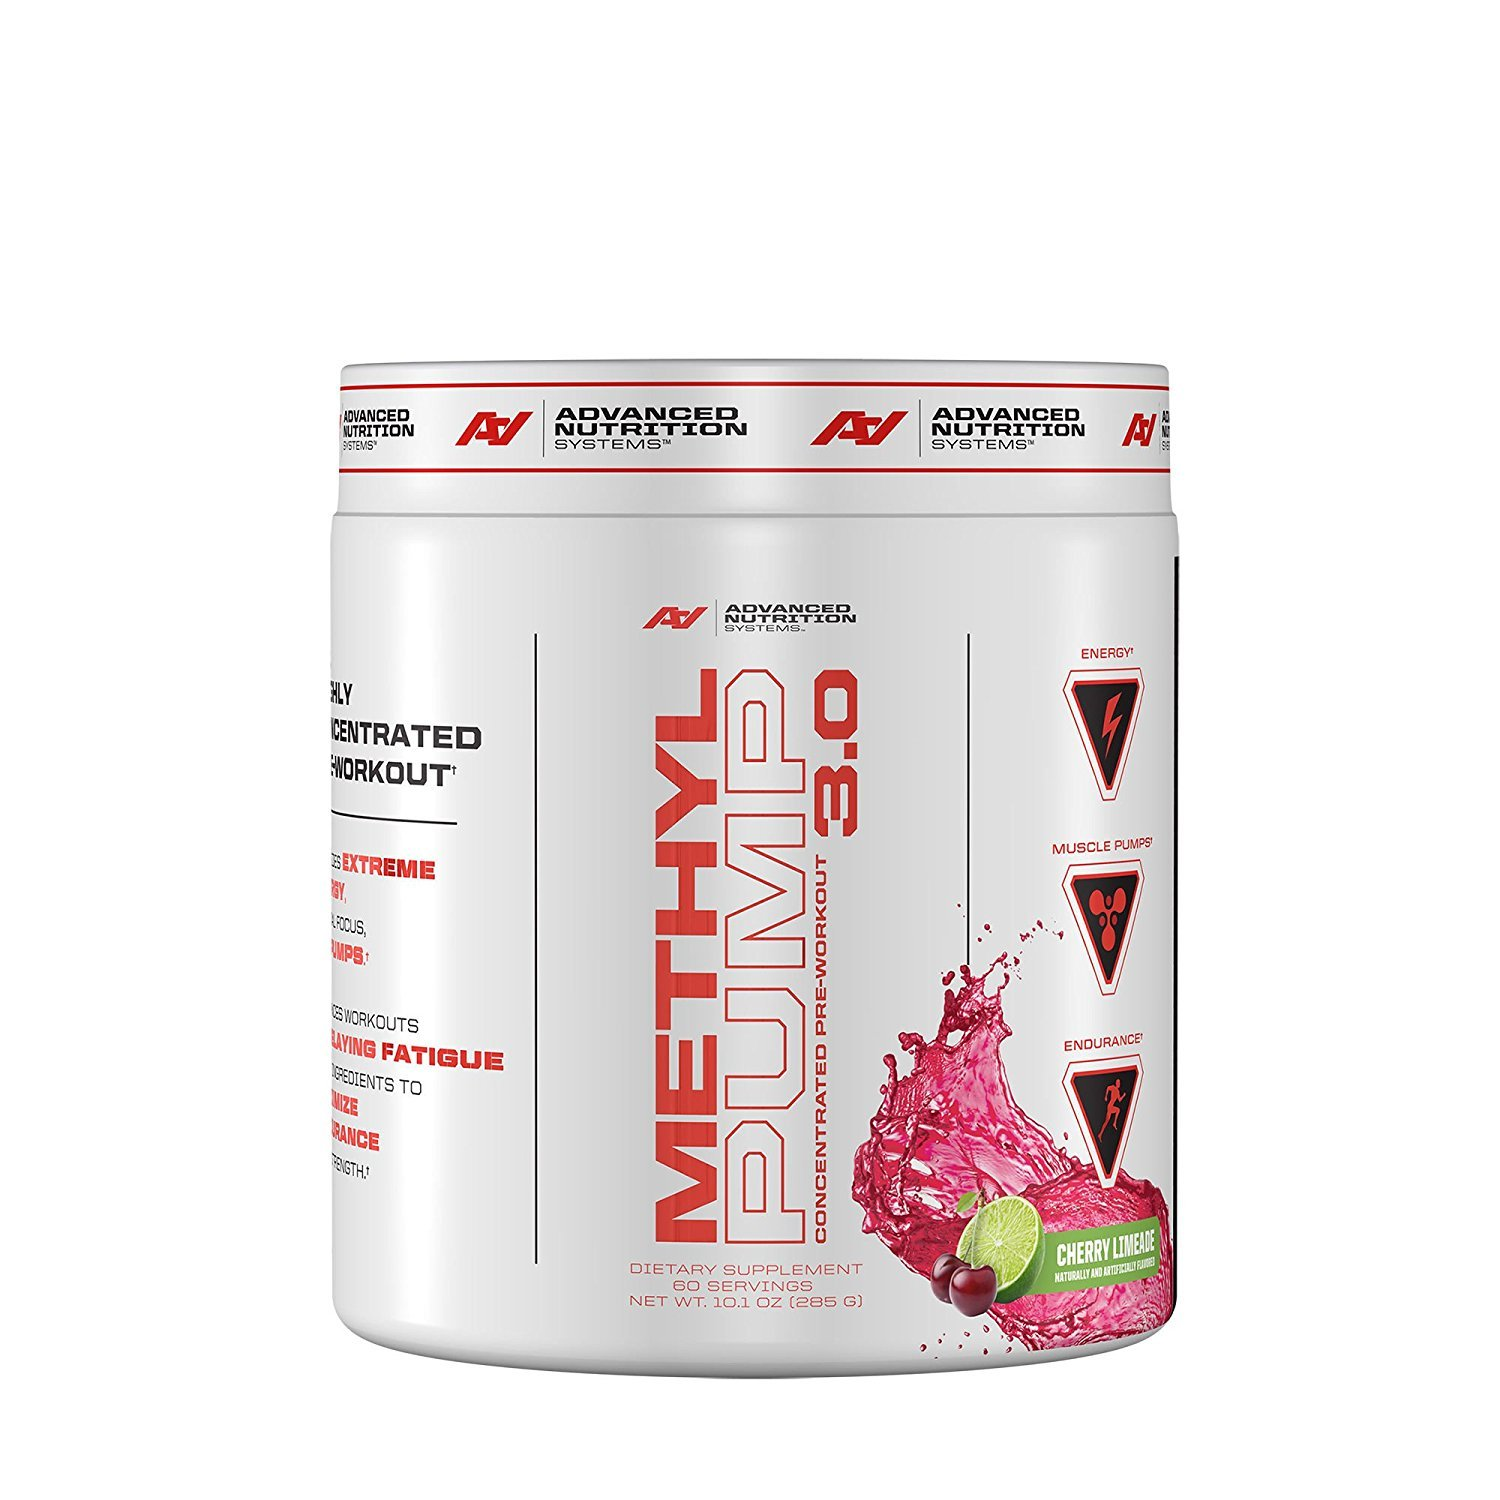 Advanced Nutrition Systems Methyl Pump Concentrated Pre-Workout 3.0 - Cherry Limeade by Advanced Nutrition Systems (Image #1)